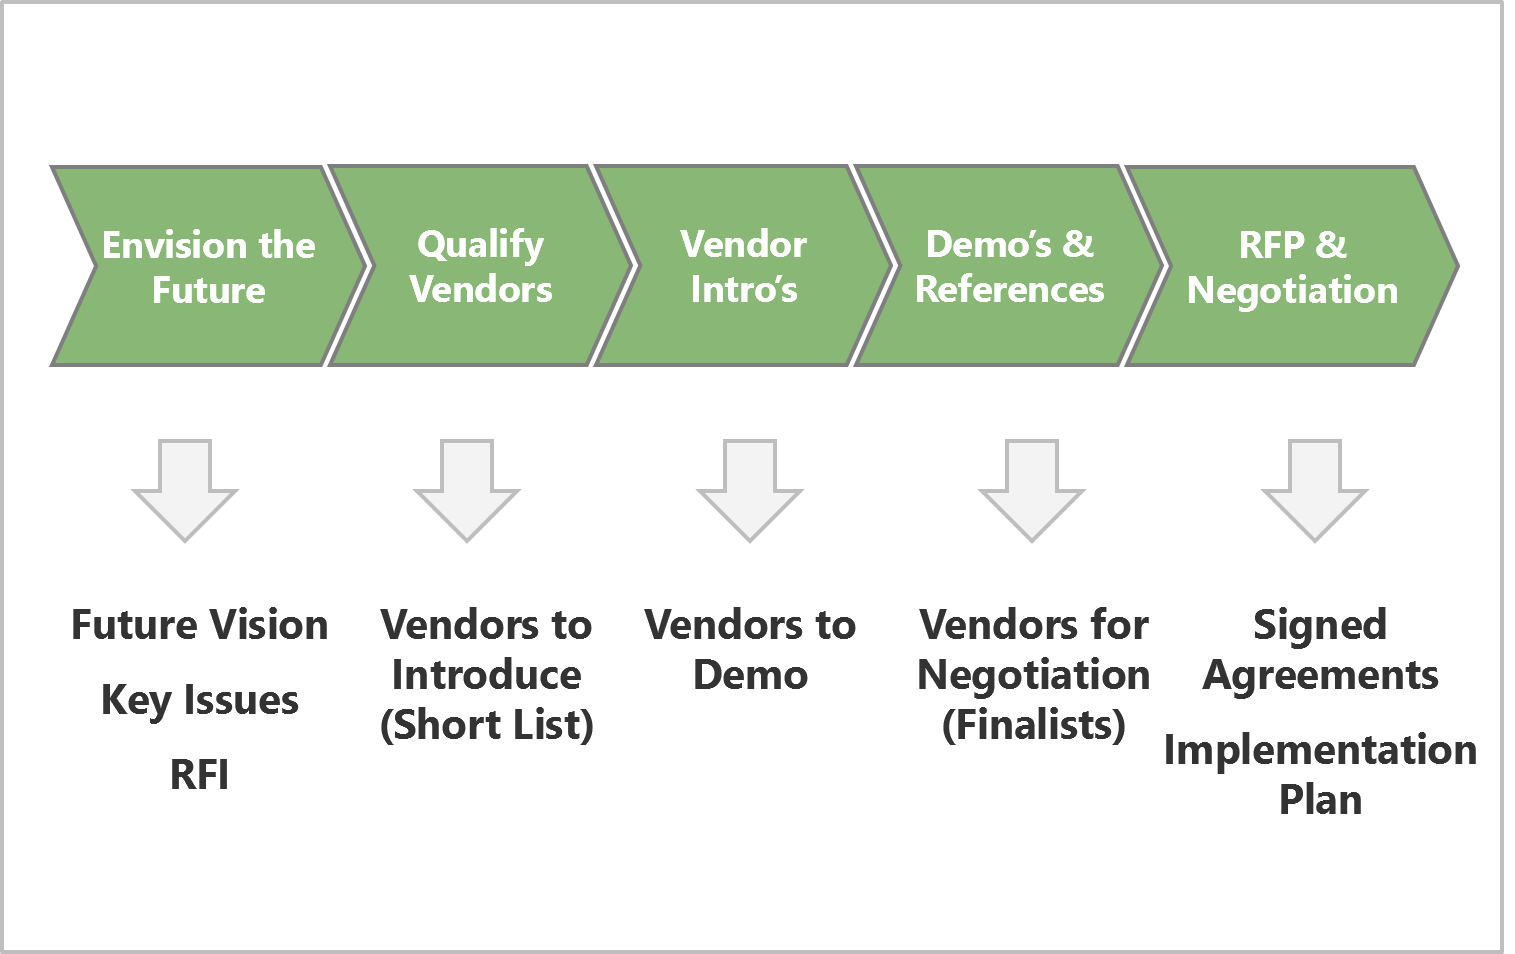 Software Selection Consulting and Vendor Evaluation – Vendor Evaluation